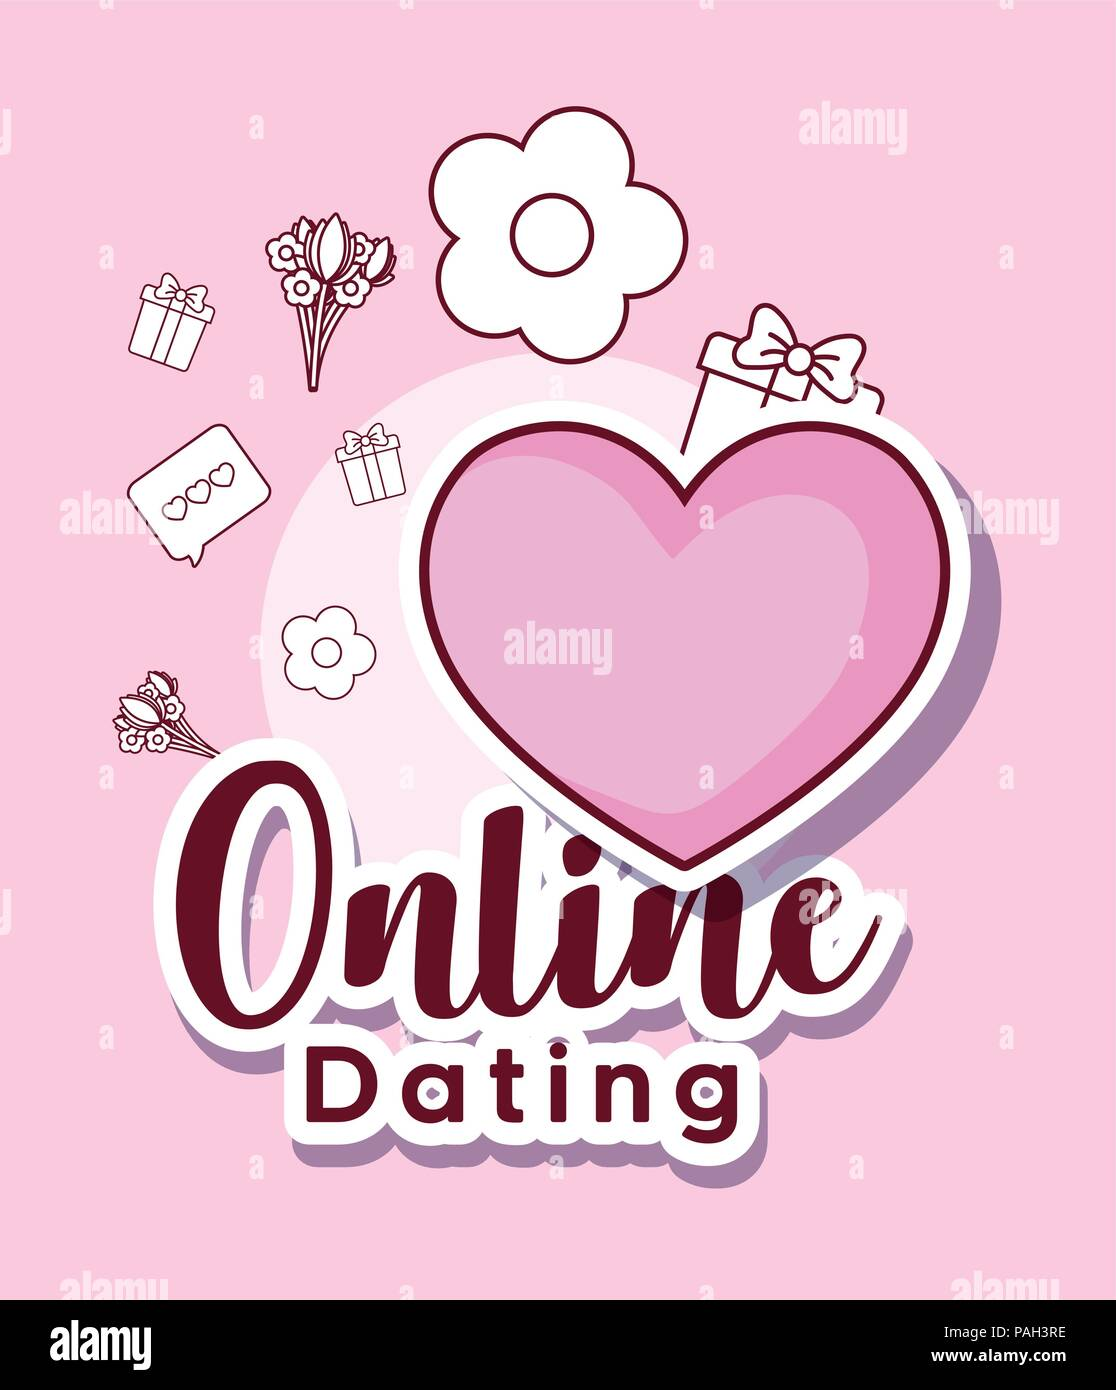 dating site with heart icon